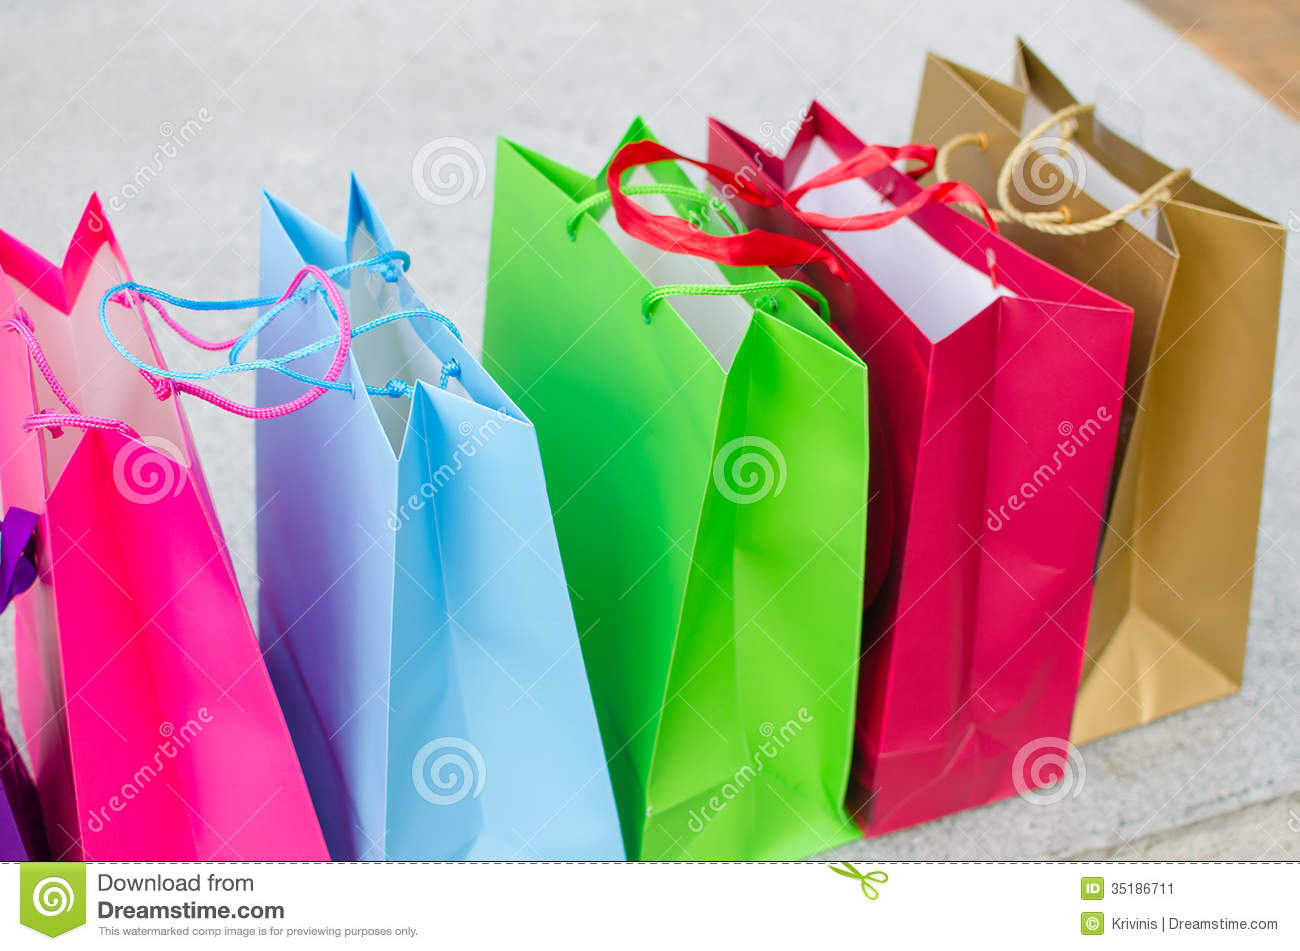 Colored gift bags stock image image of holiday colors 35186711 colored gift bags holiday colors negle Image collections